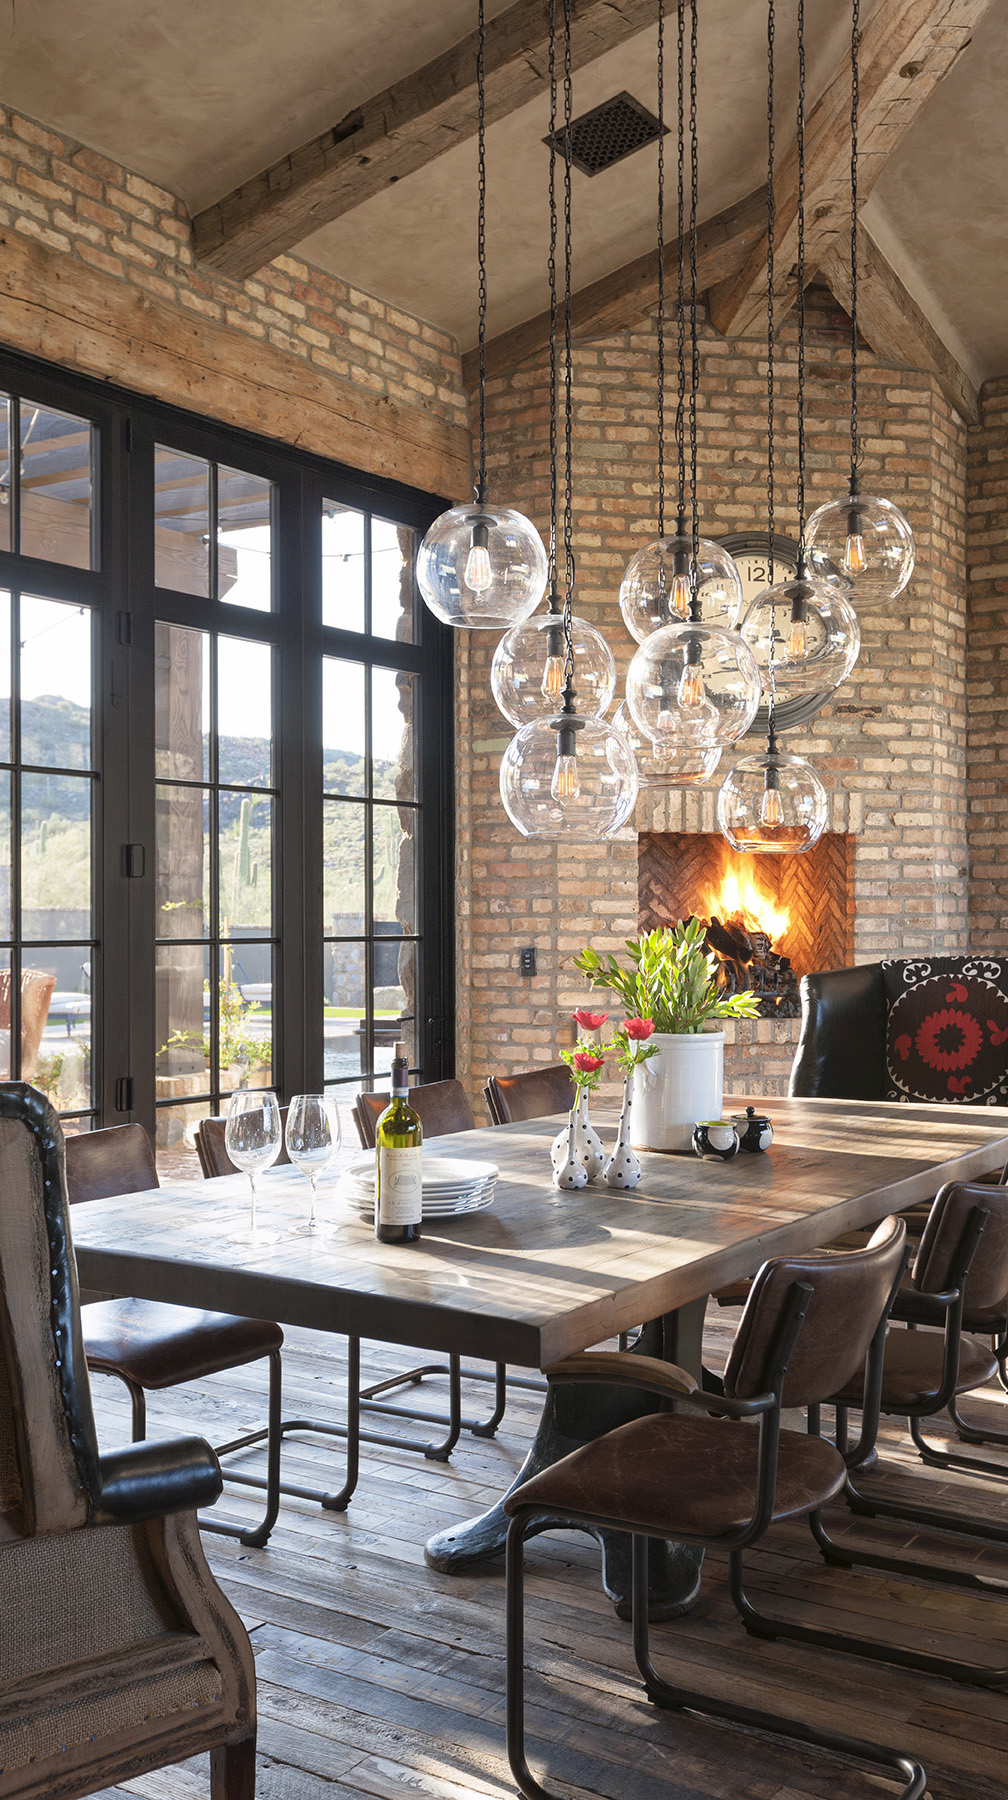 Eclectic Dining Room Ideas Part - 35: Rustic Eclectic Dining Room